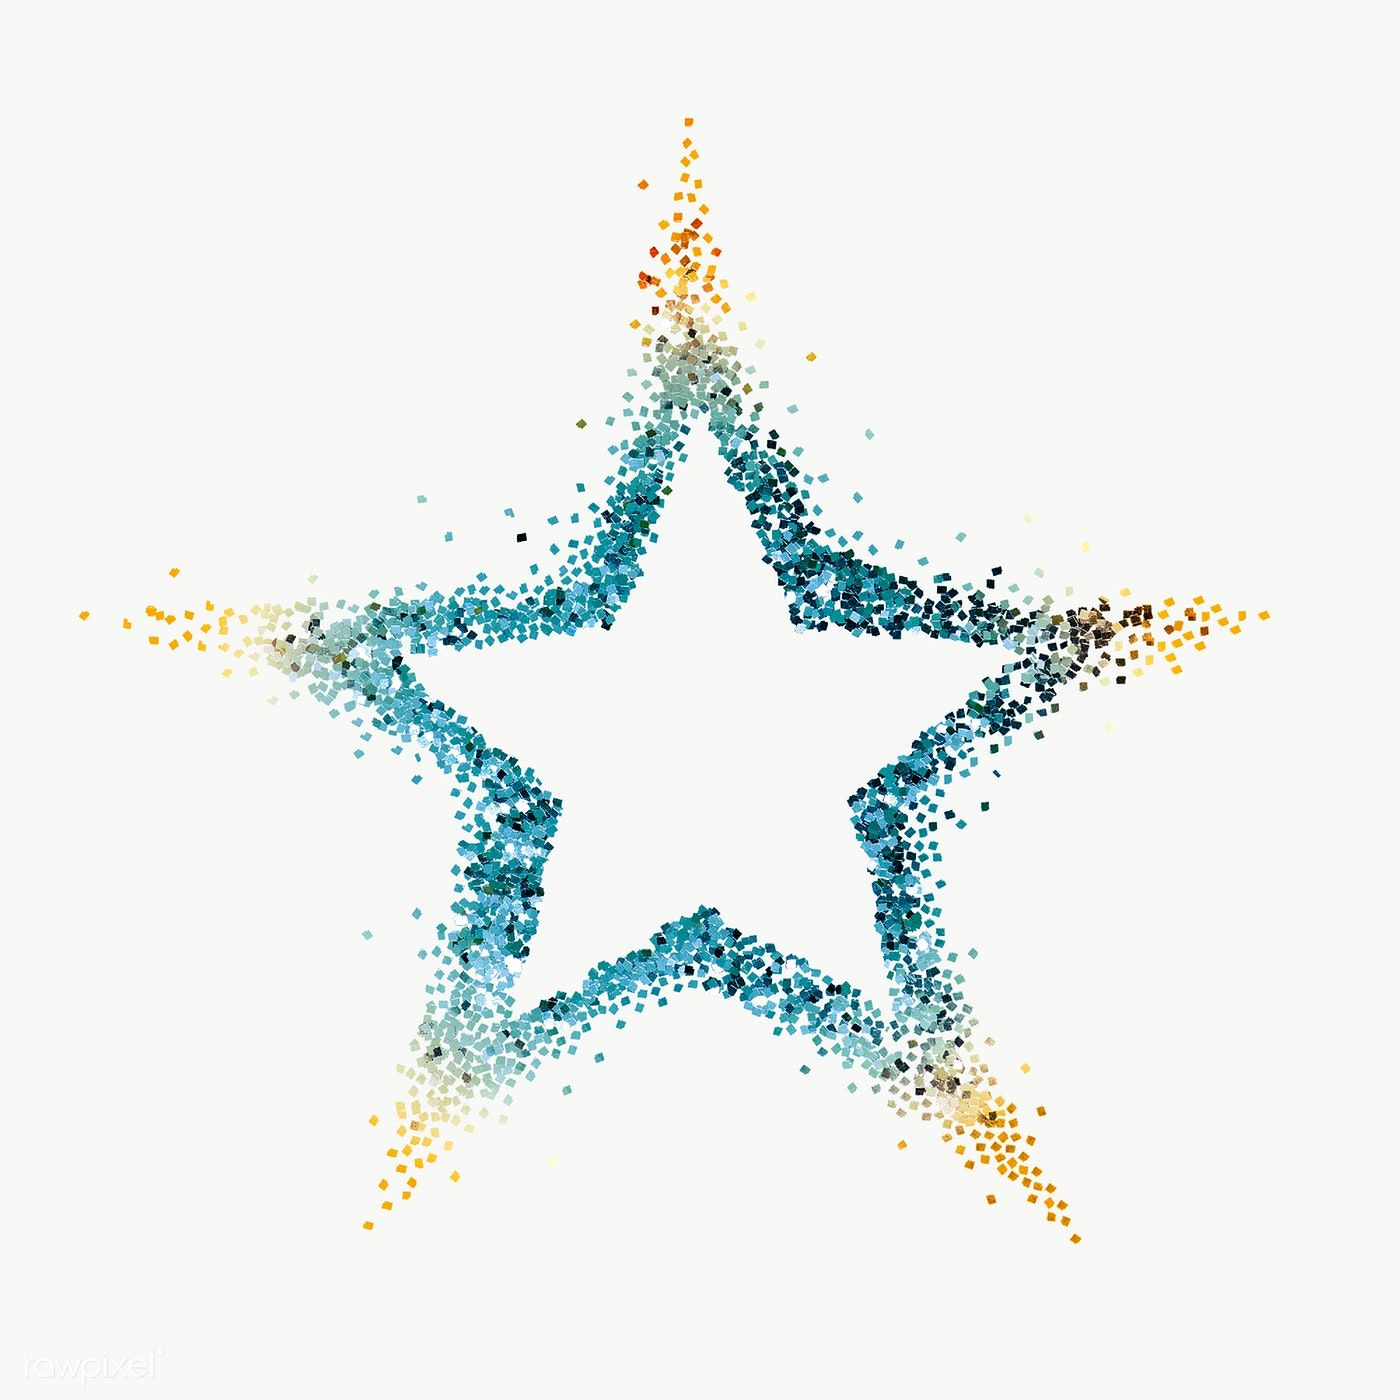 Blue Star With Gold Tips Transparent Png Free Image By Rawpixel Com Ployploy Vector Background Pattern Gold Tips Star Illustration